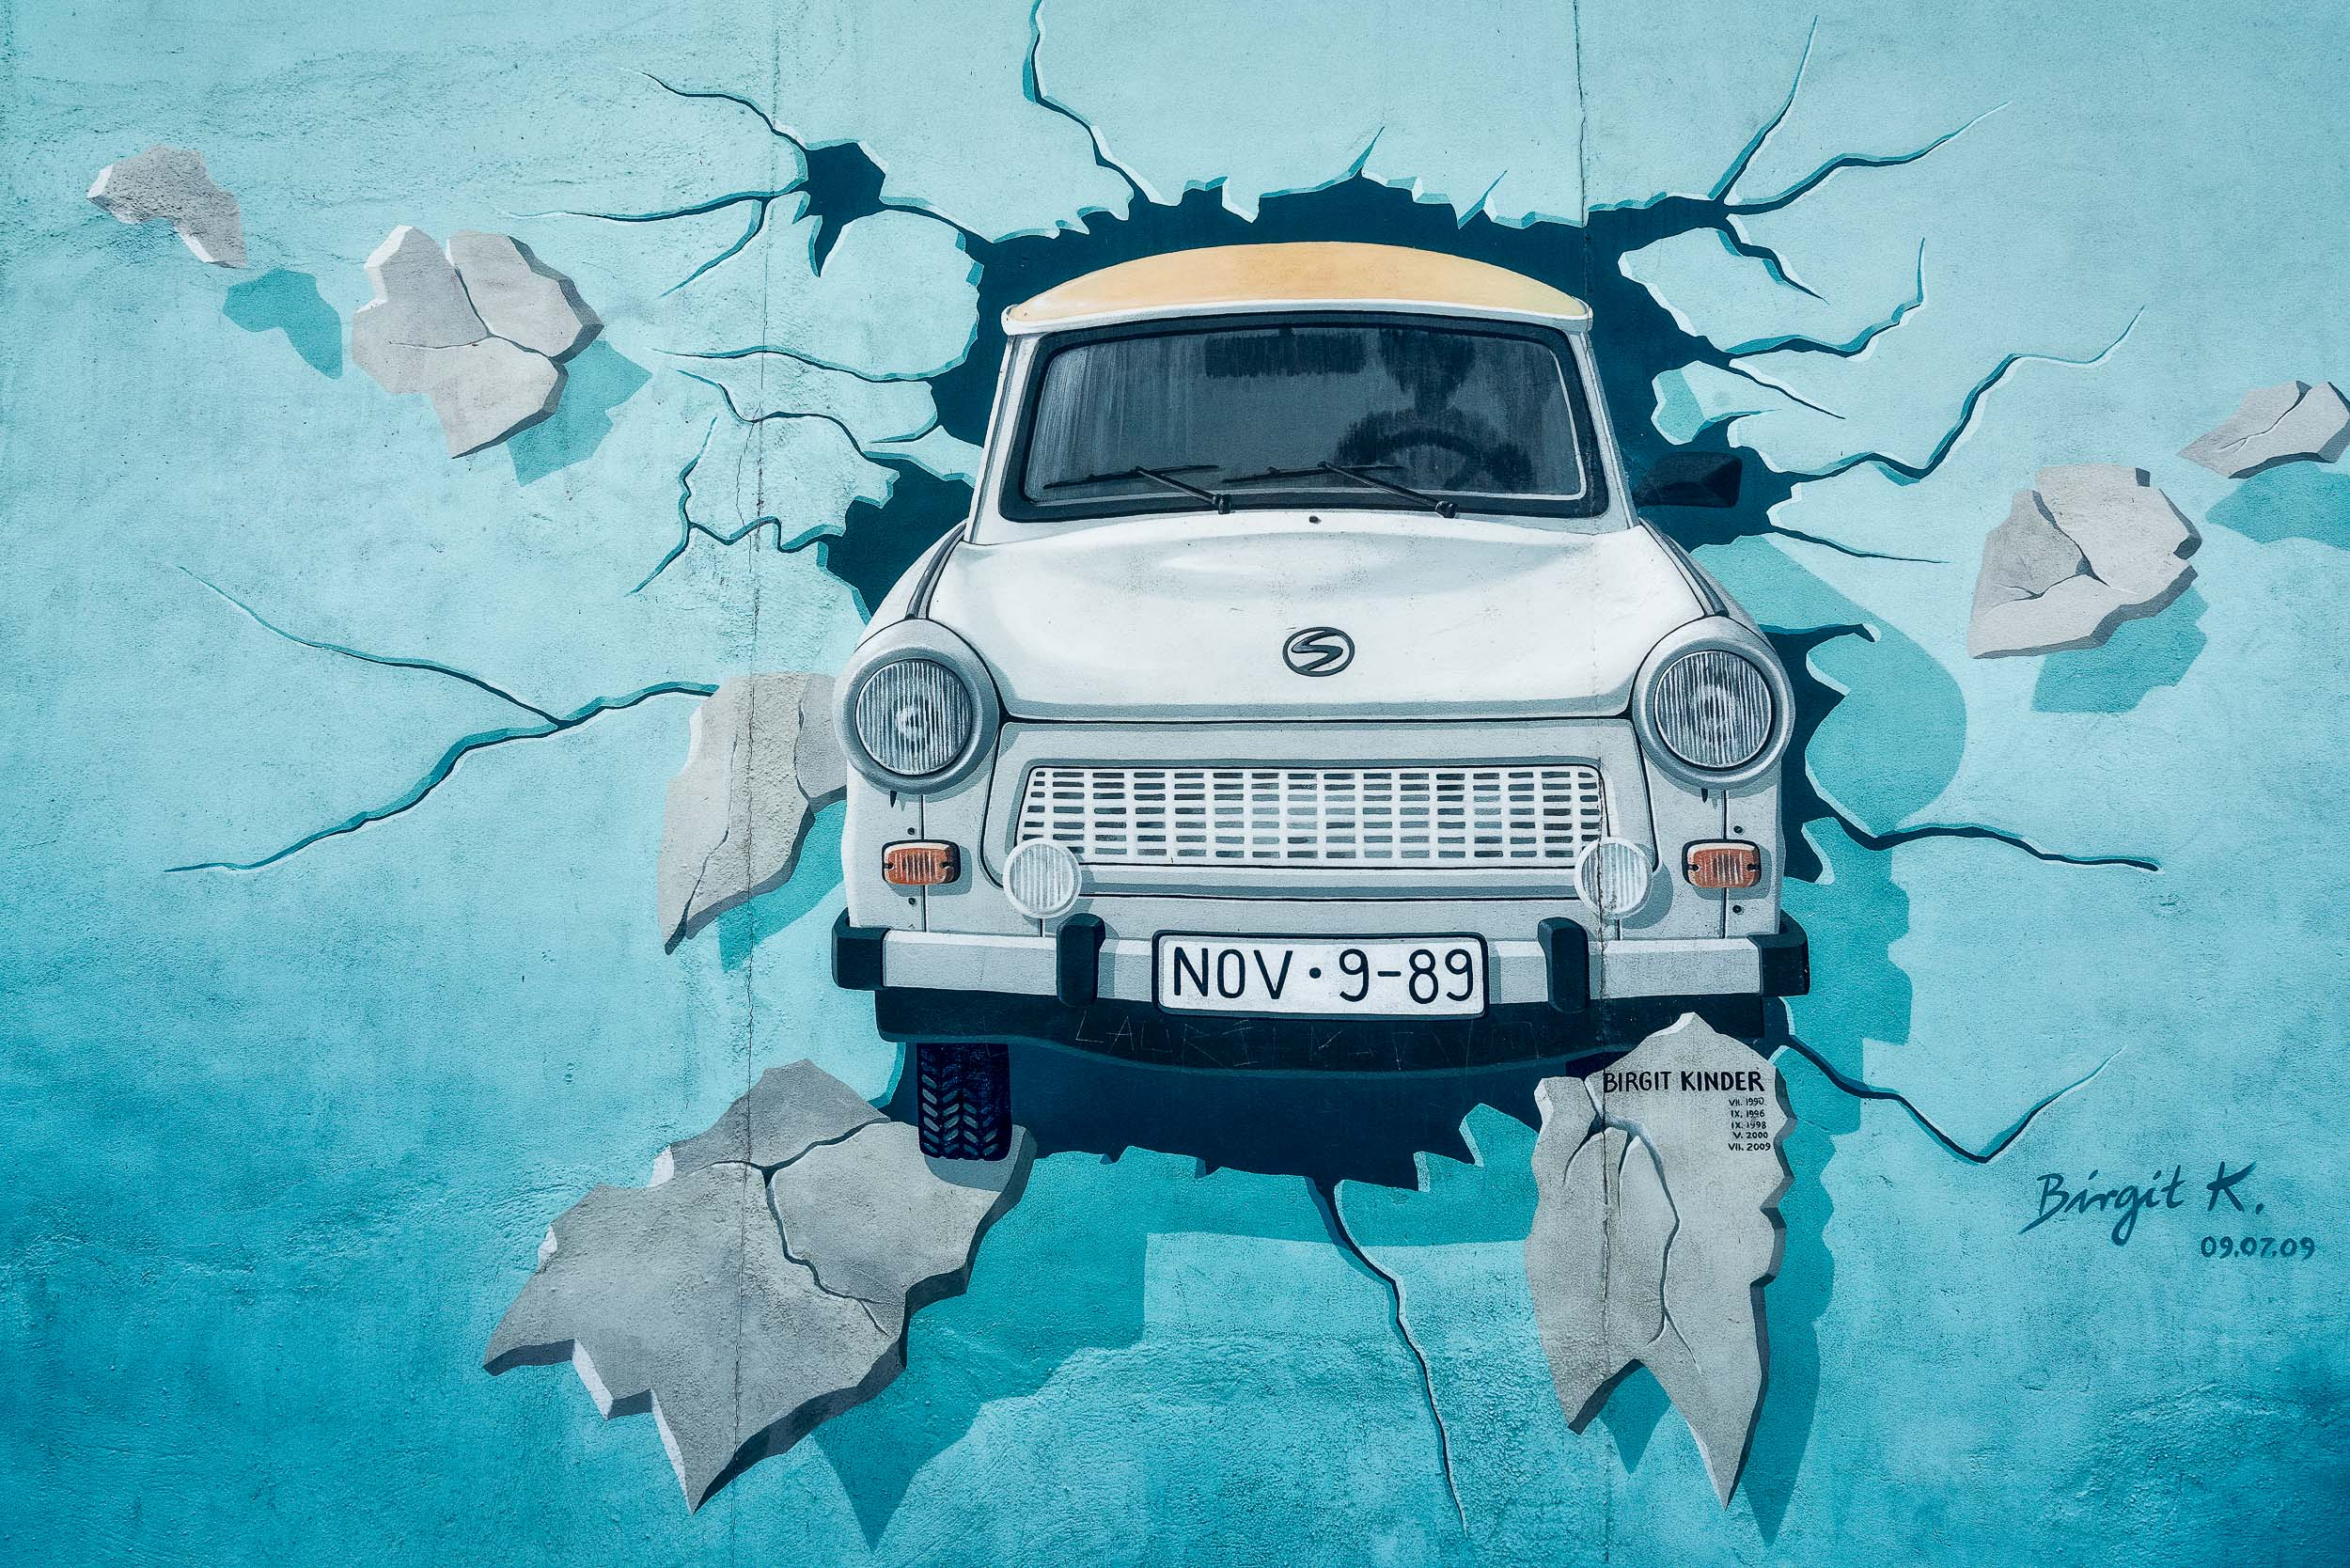 The artist  Birgit Kinder's painting  of a soviet manufactured  Trabant car  breaking through the  Berlin Wall  shows a license plate displaying the date the wall fell.